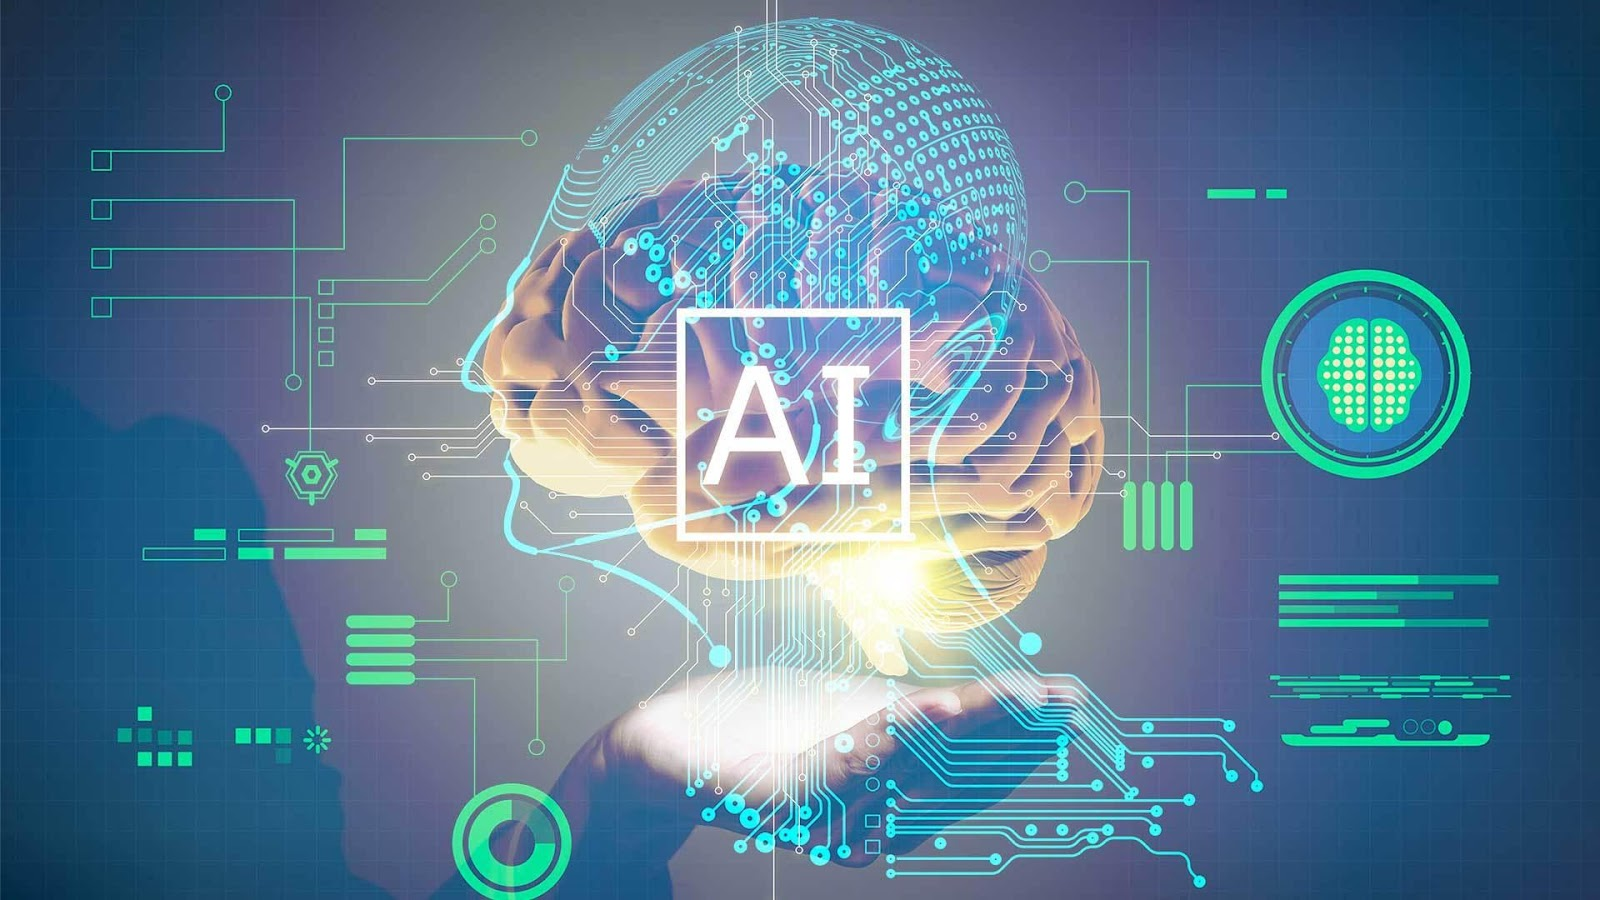 Artificial Intelligence and Machine Learning in business intelligence